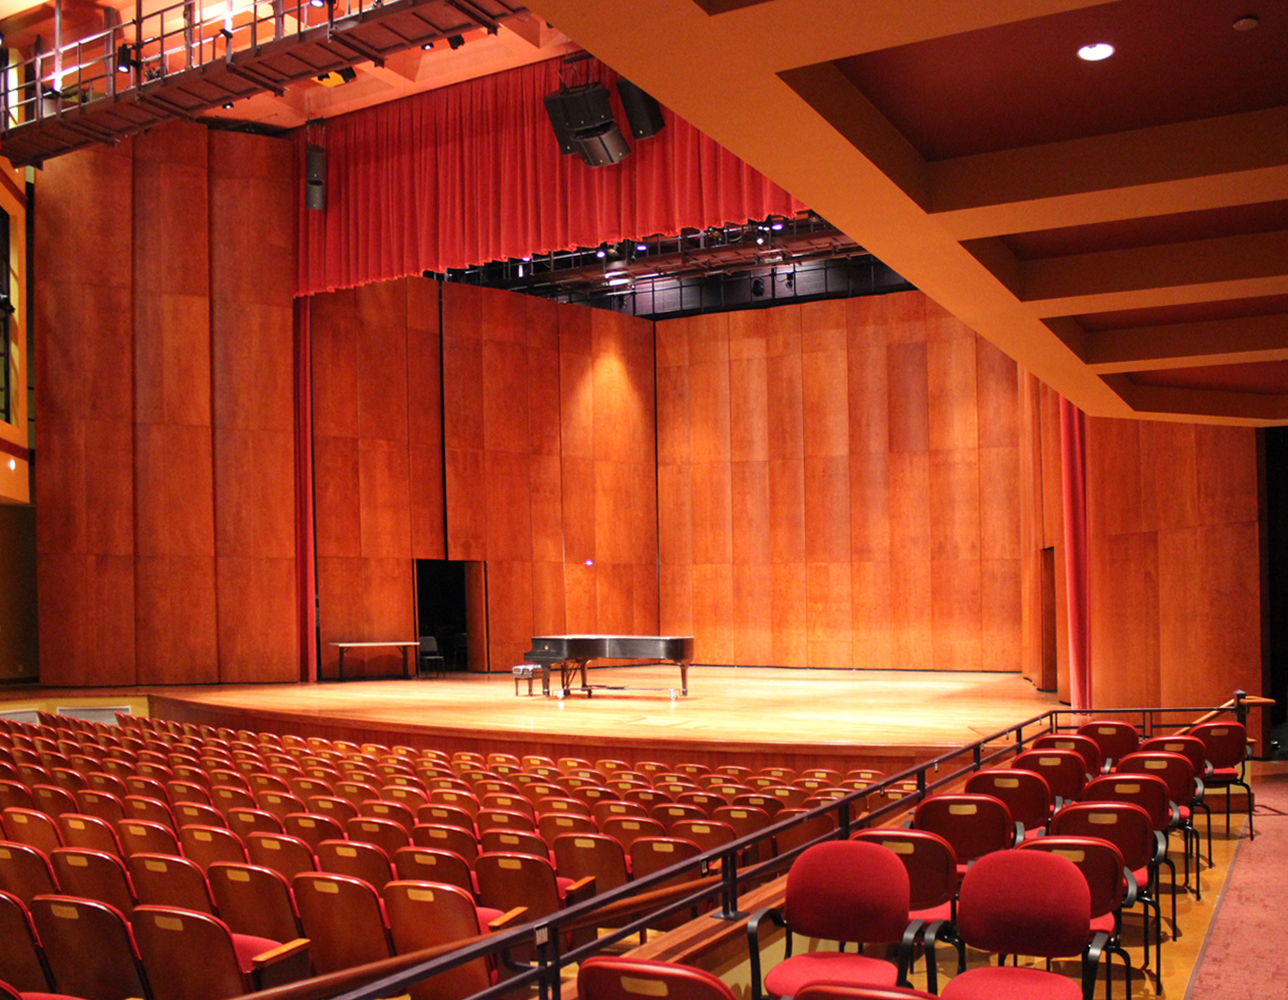 SETON HILL PERFORMING ARTS CENTER